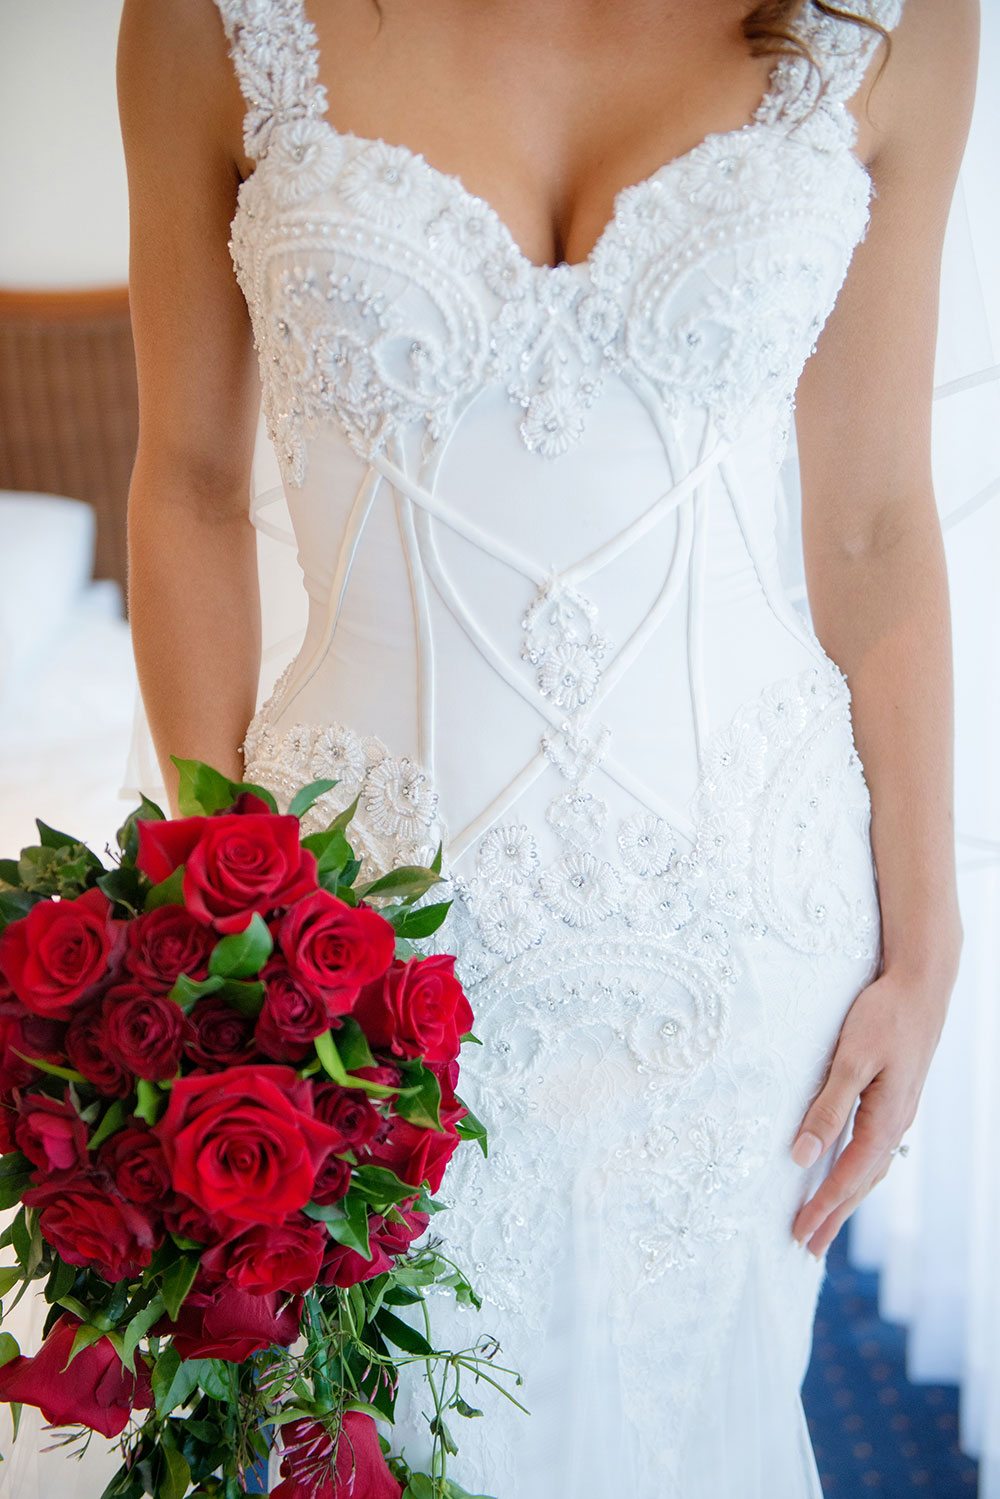 Bridal gown detailing